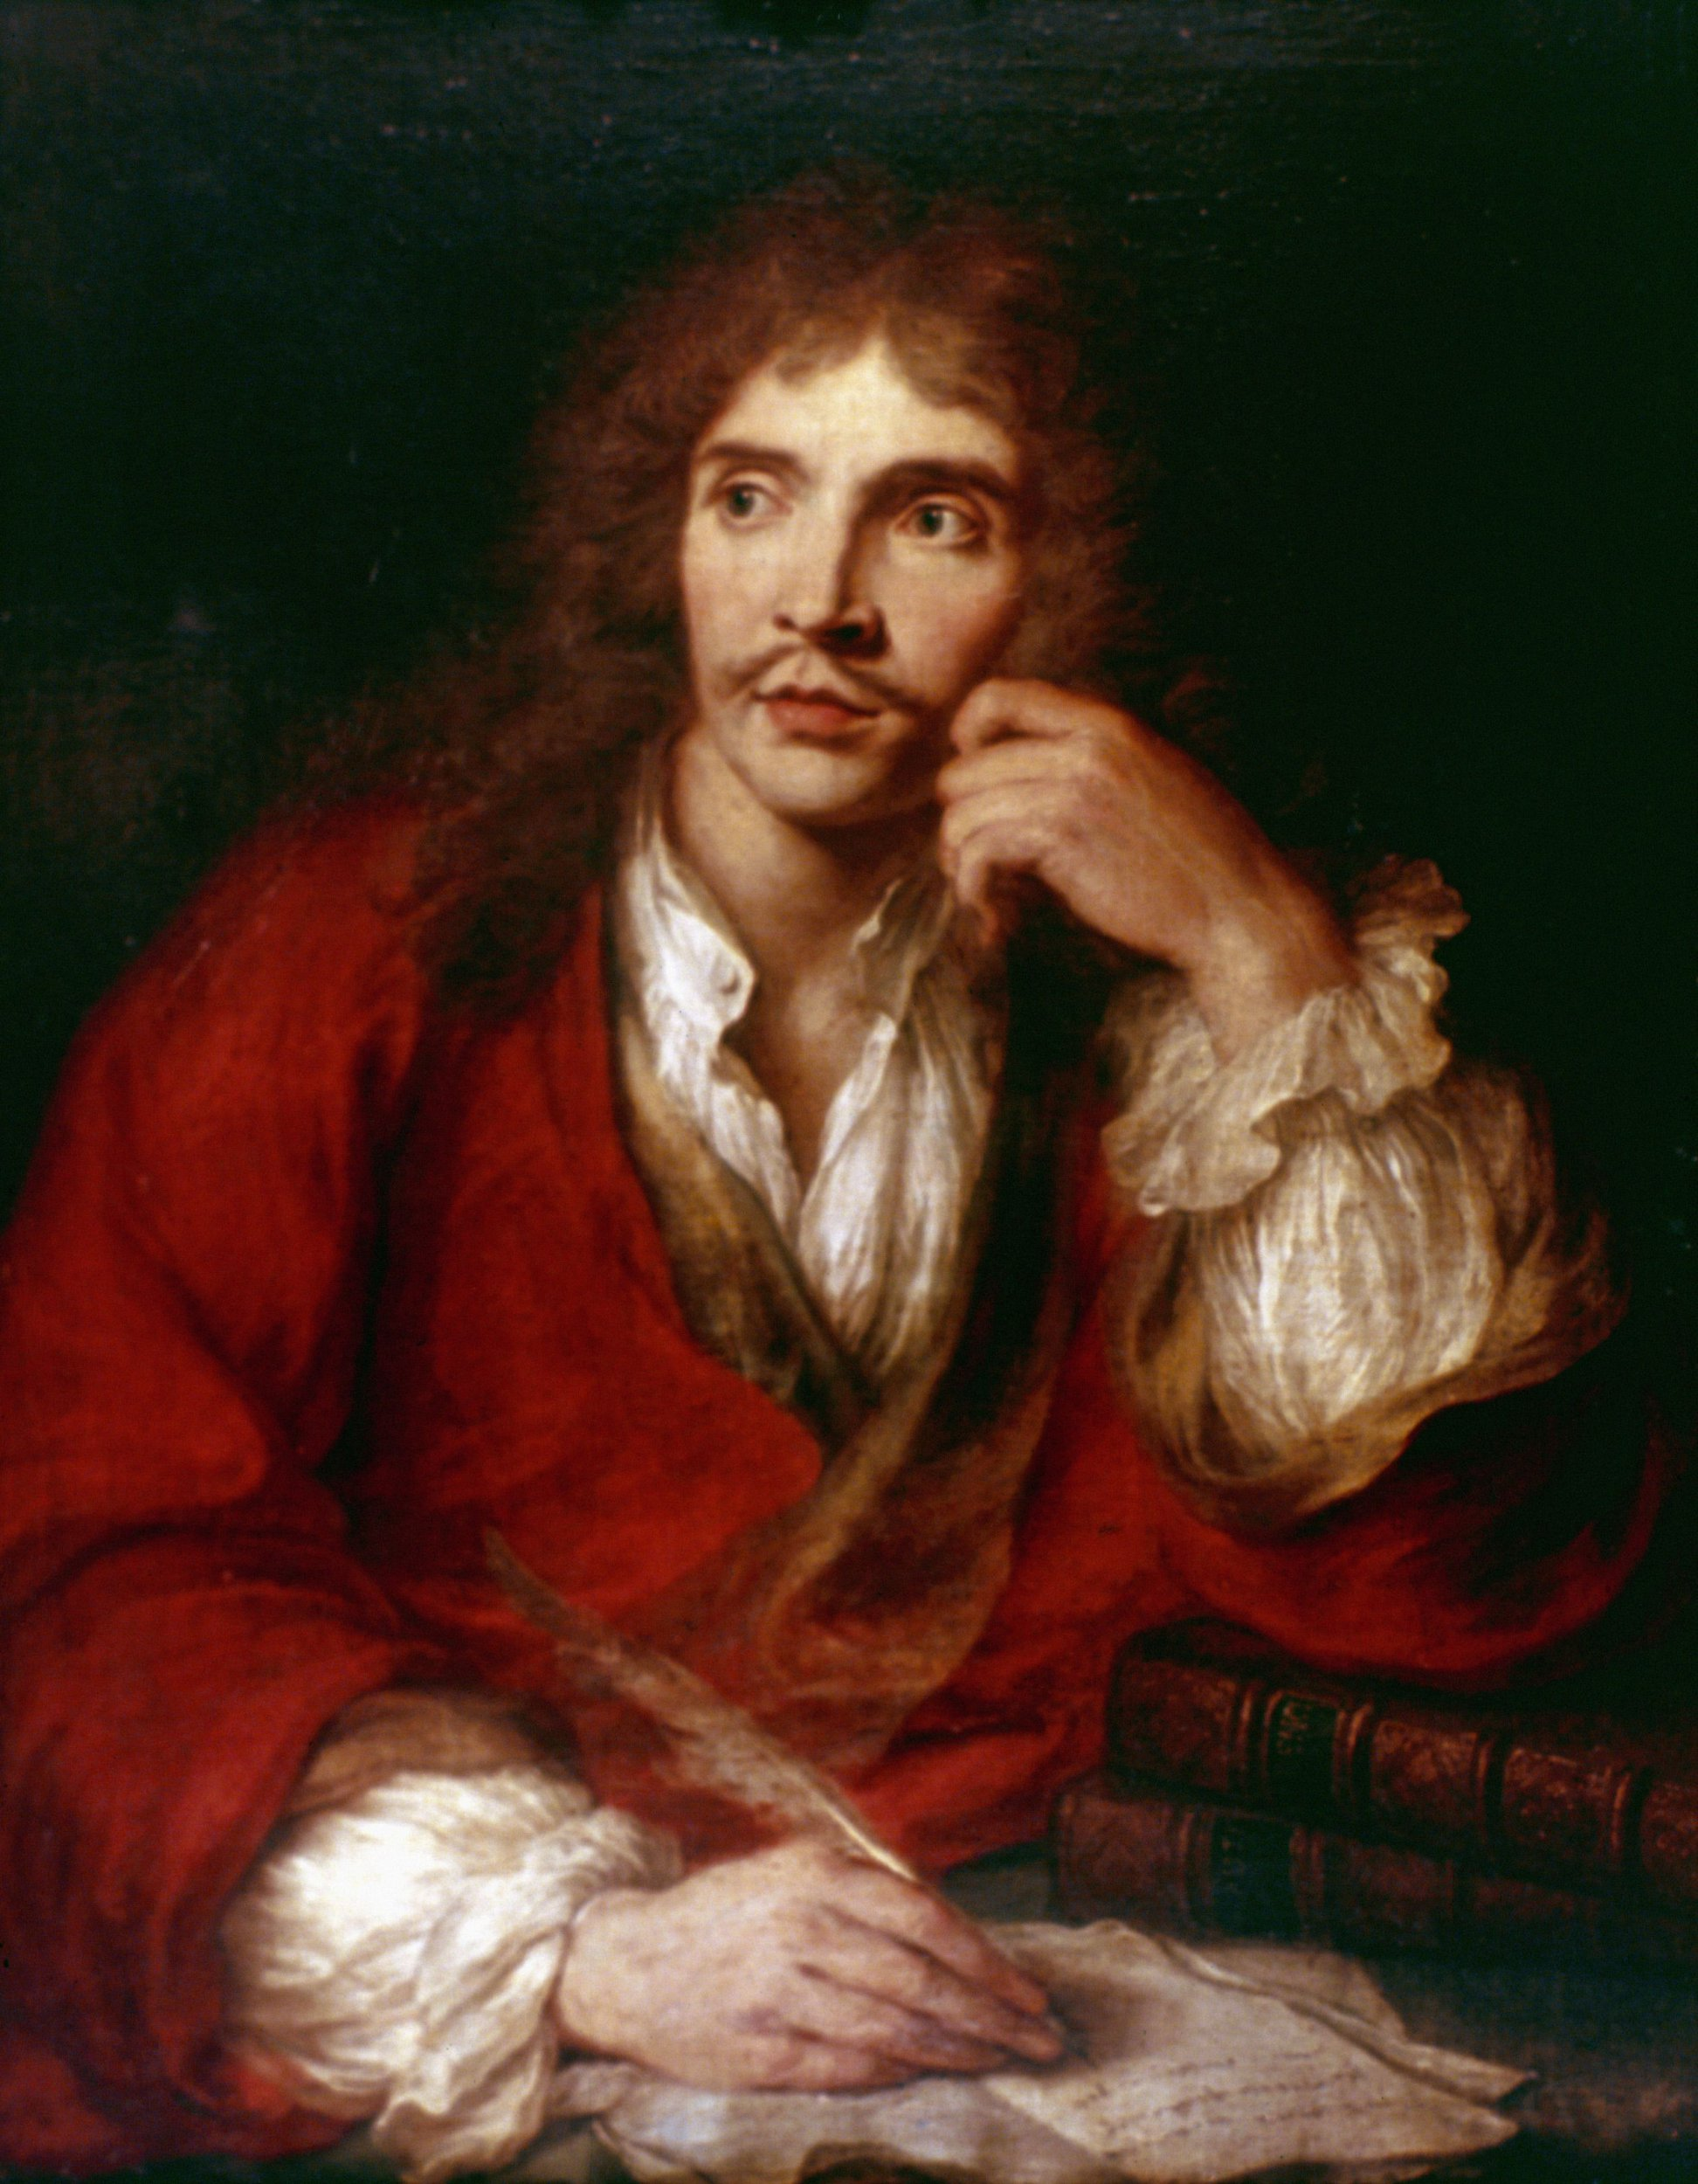 Who is Molière and why is he today's Google Doodle?